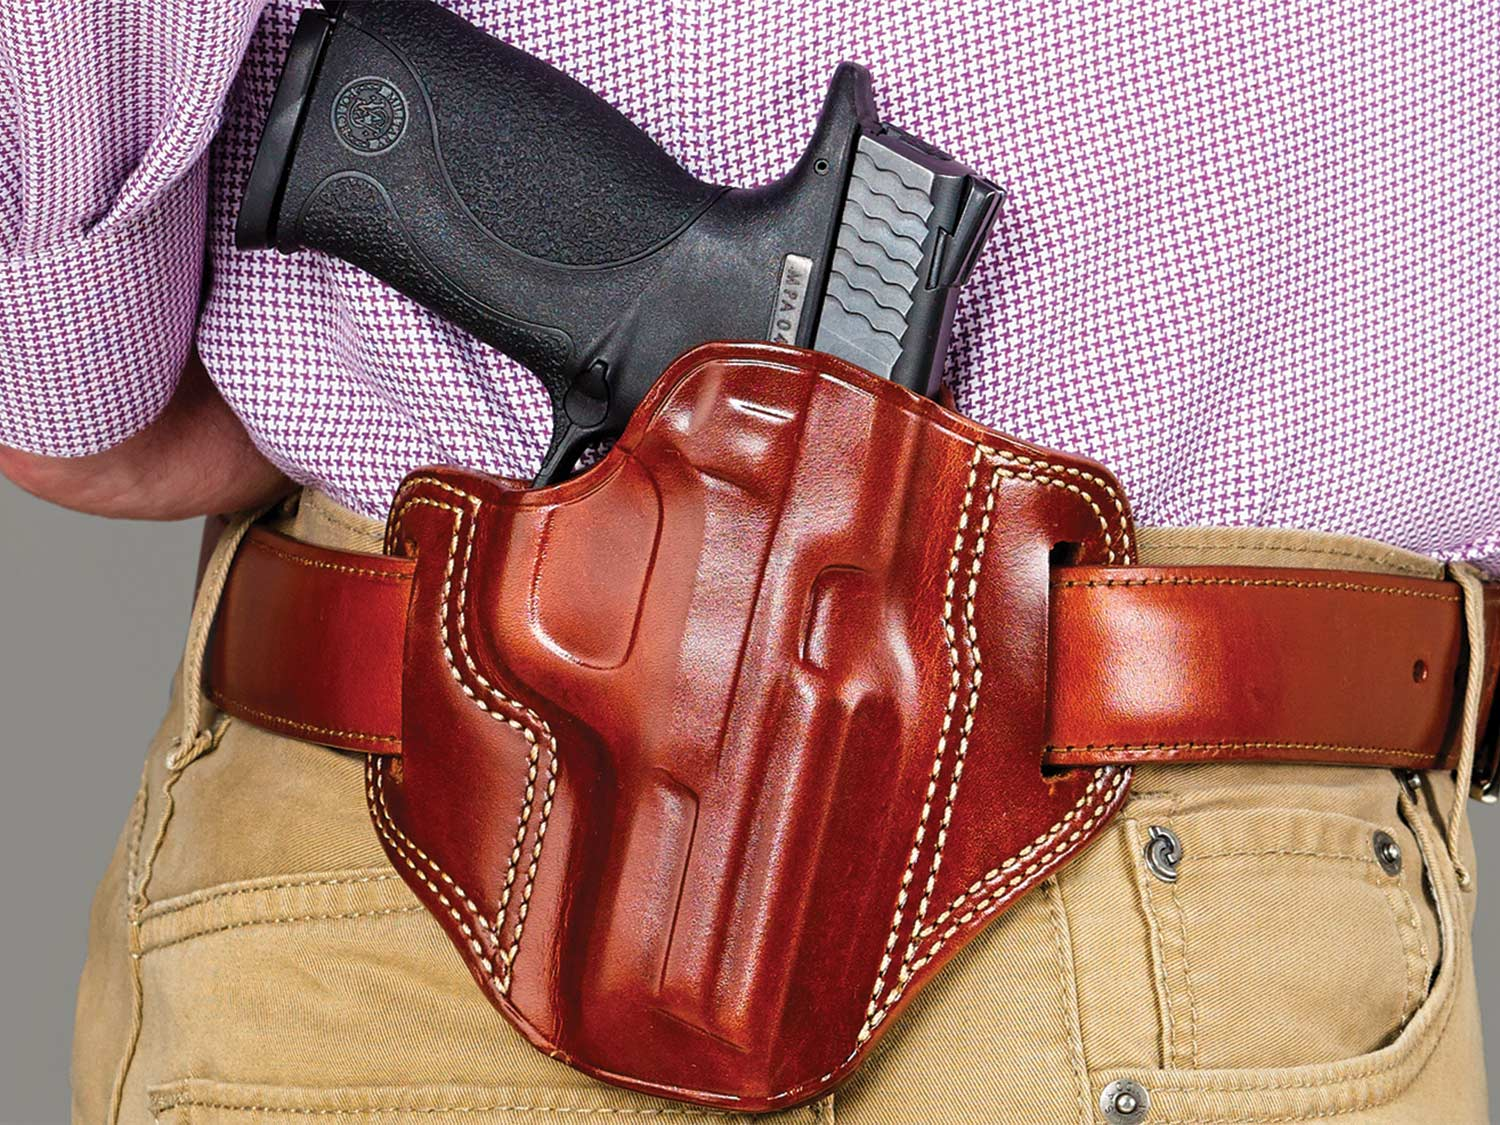 Galco Combat Master waistband leather holster.